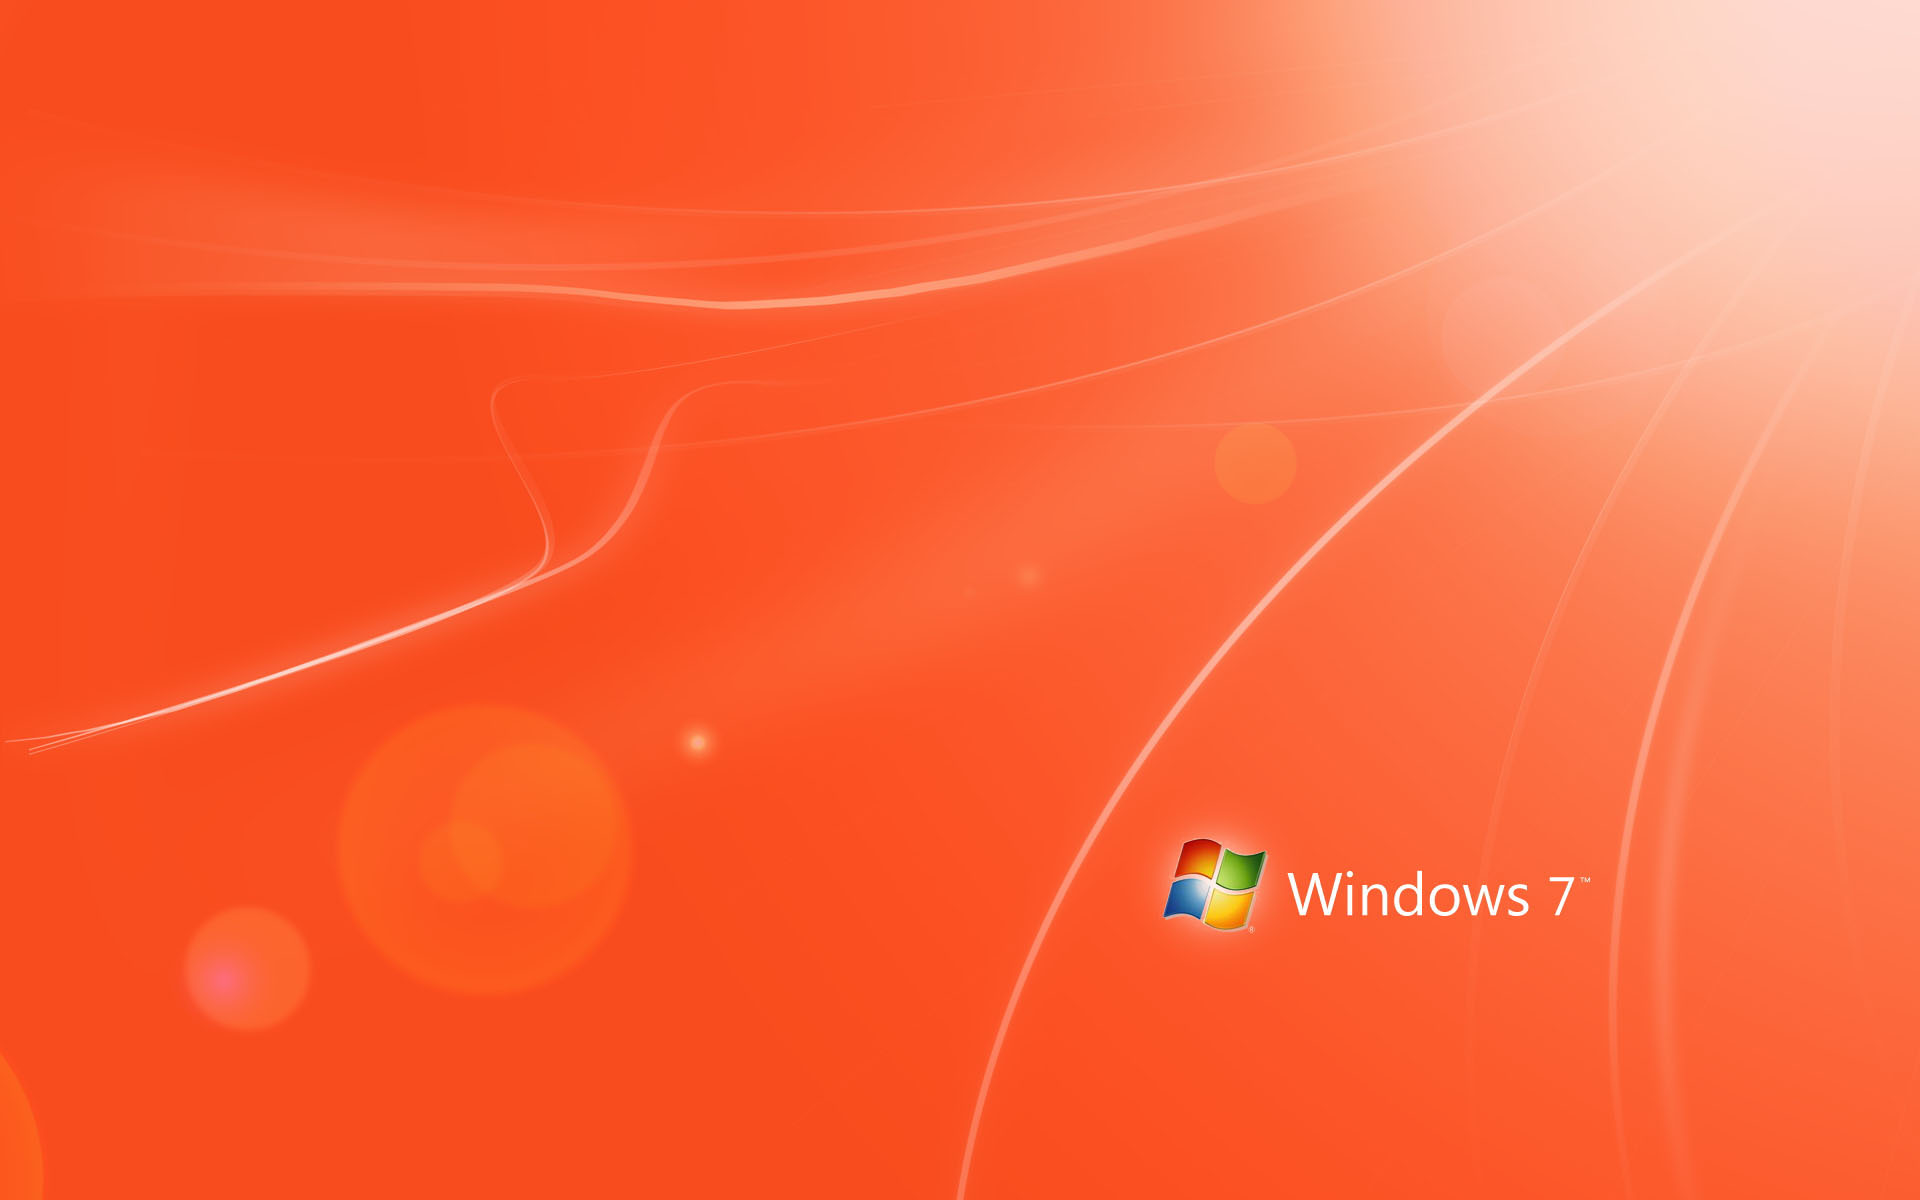 Windows Desktop Wallpaper 5148